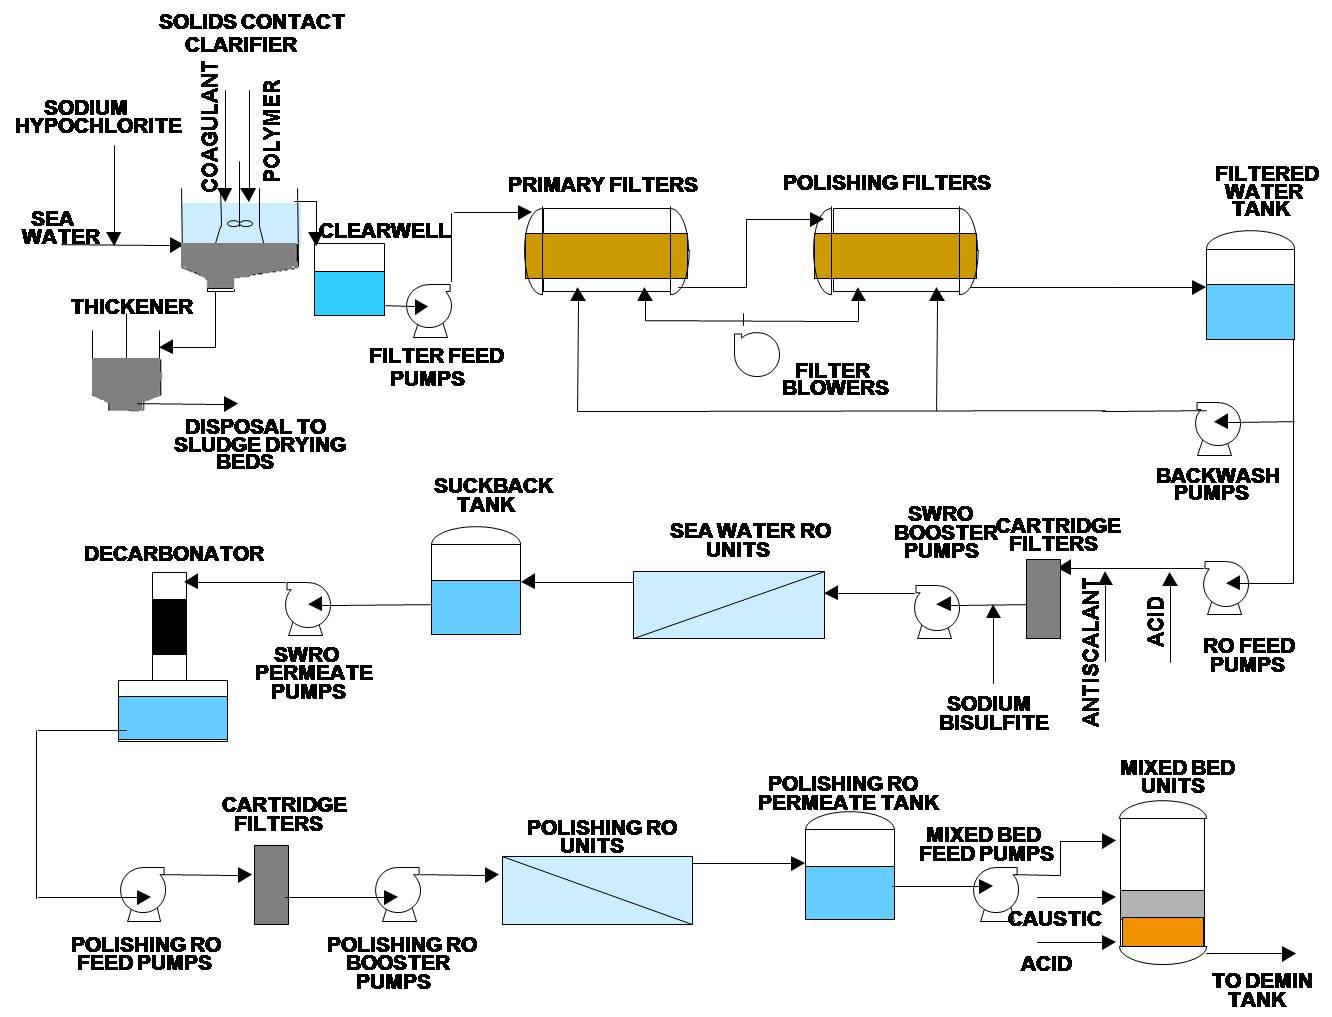 Plant flow chart ablution room design water cycle flow chart free dashboard software kansas map usa pps27 img4 water cycle flow charthtml plant flow chart plant flow chart nvjuhfo Image collections